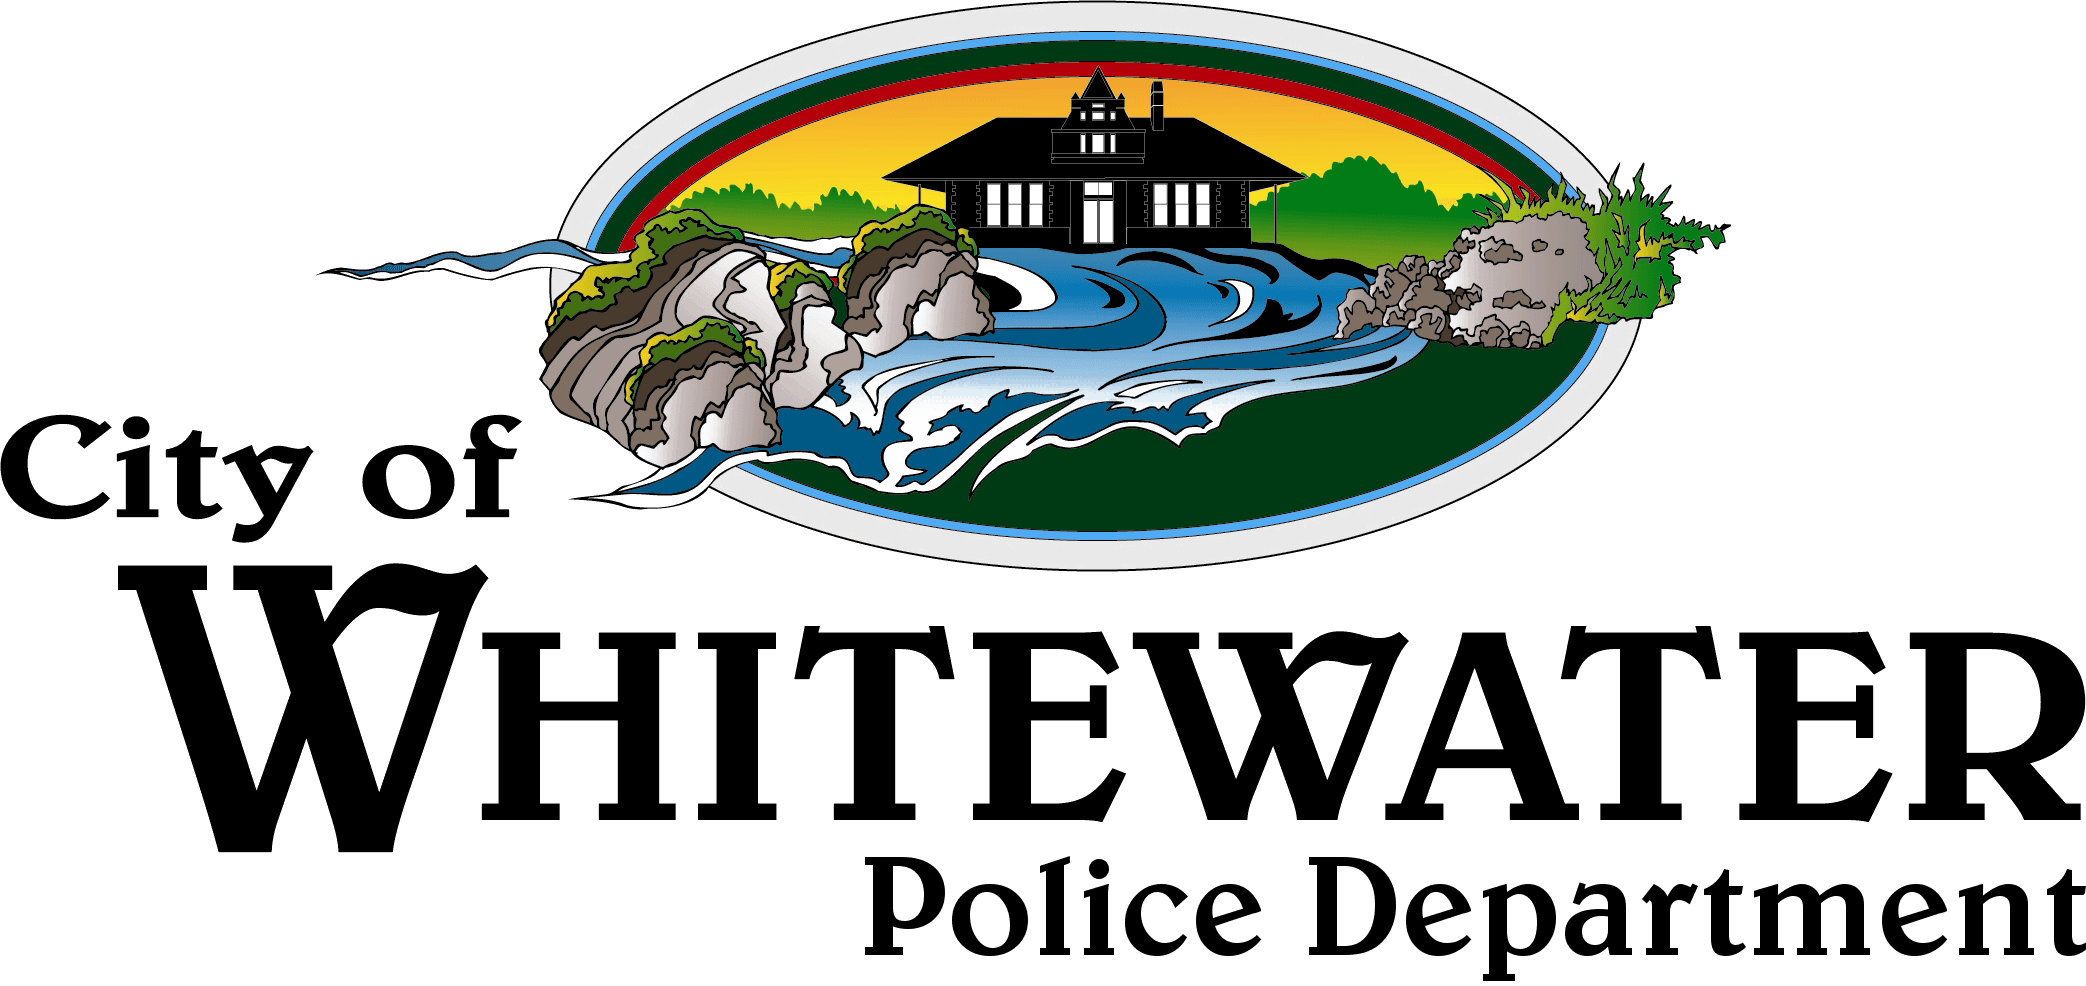 City of Whitewater Transparent Police Department